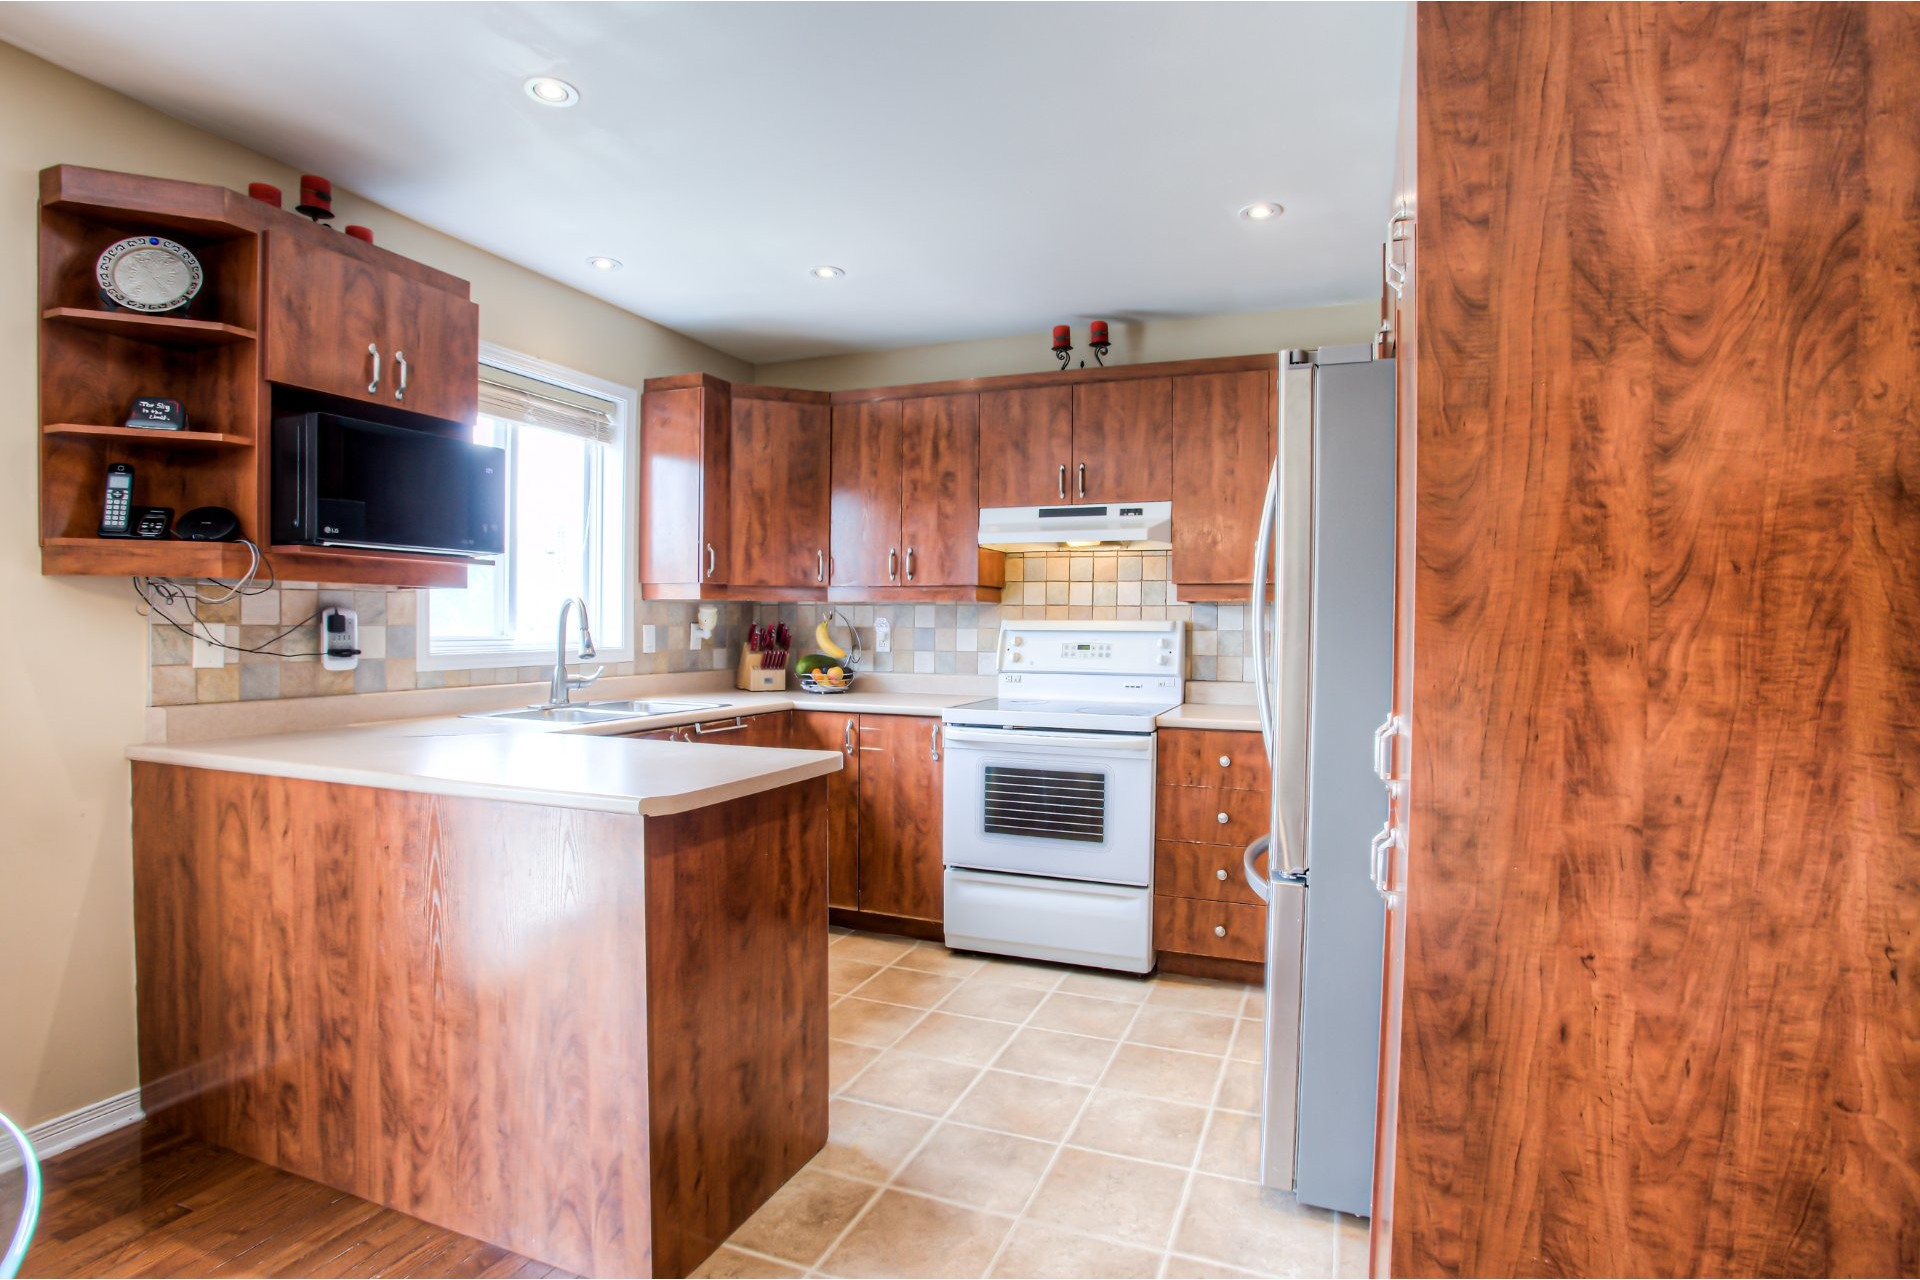 image 8 - House For sale Vaudreuil-Dorion - 7 rooms